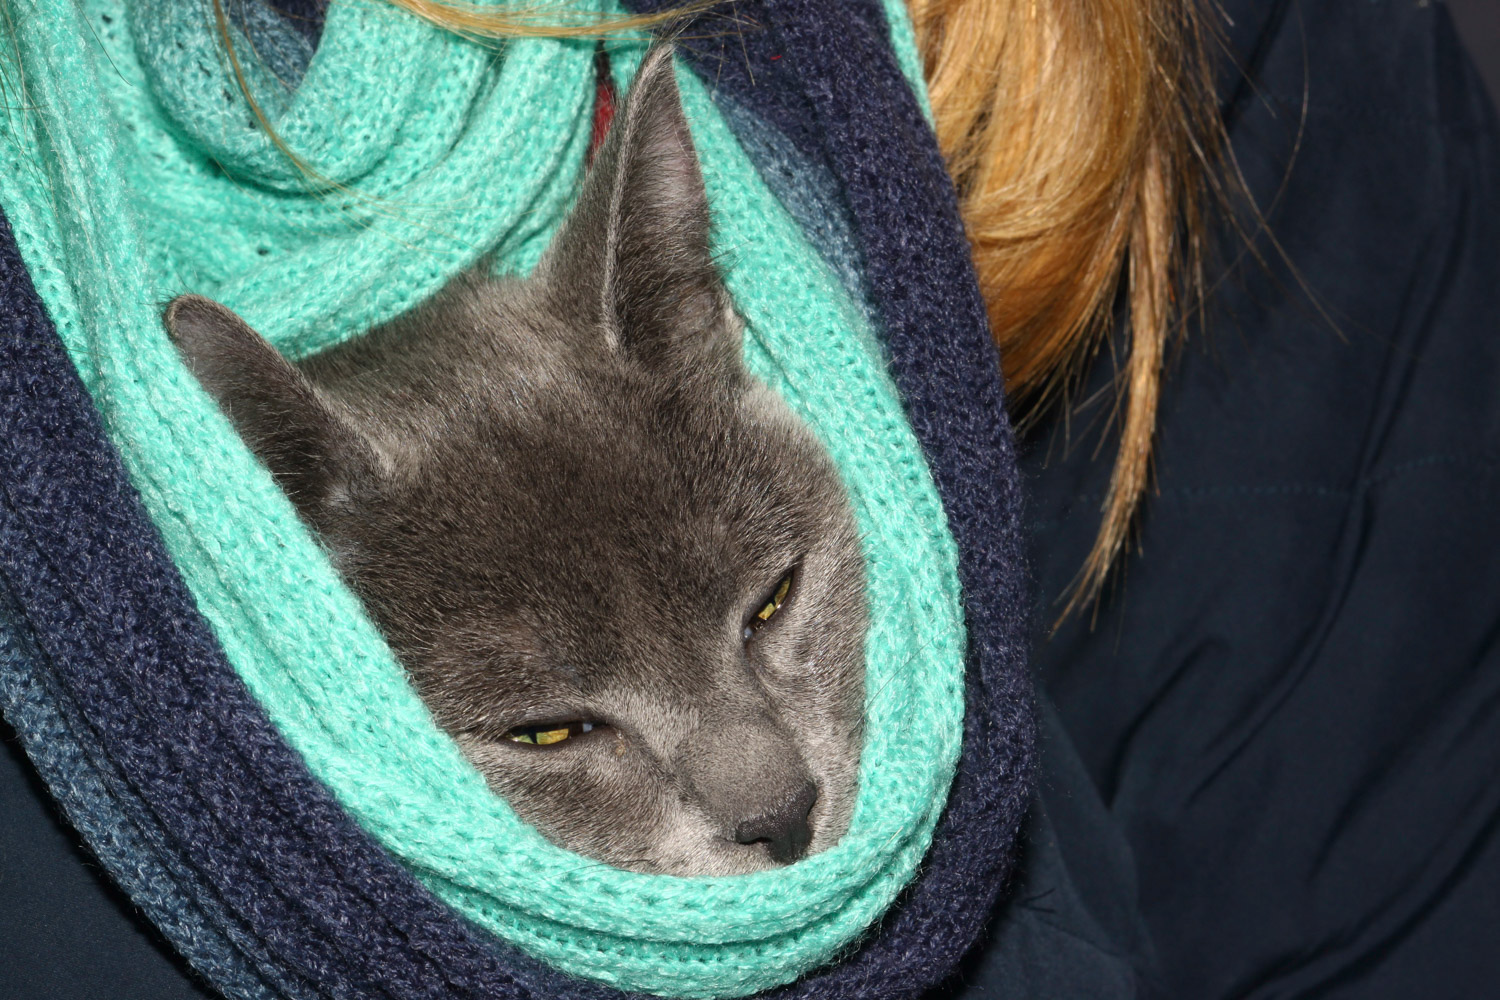 cat snuggled in scarf